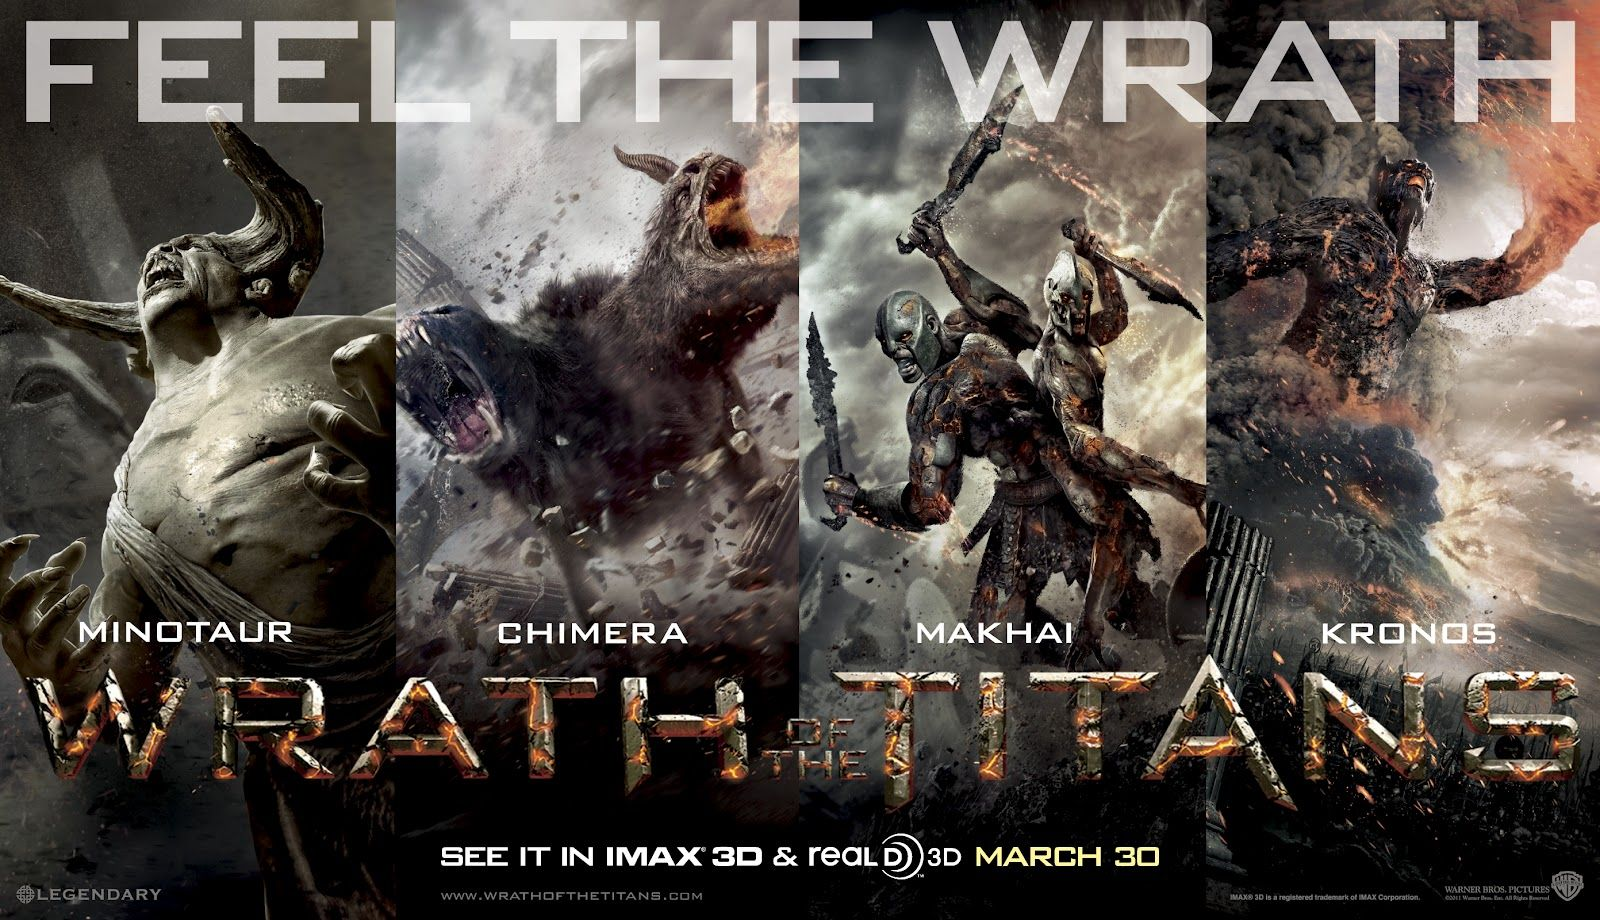 Feel The Wrath Of The Titans I Did And It Was Awesome Wrath Of The Titans Clash Of The Titans Wrath